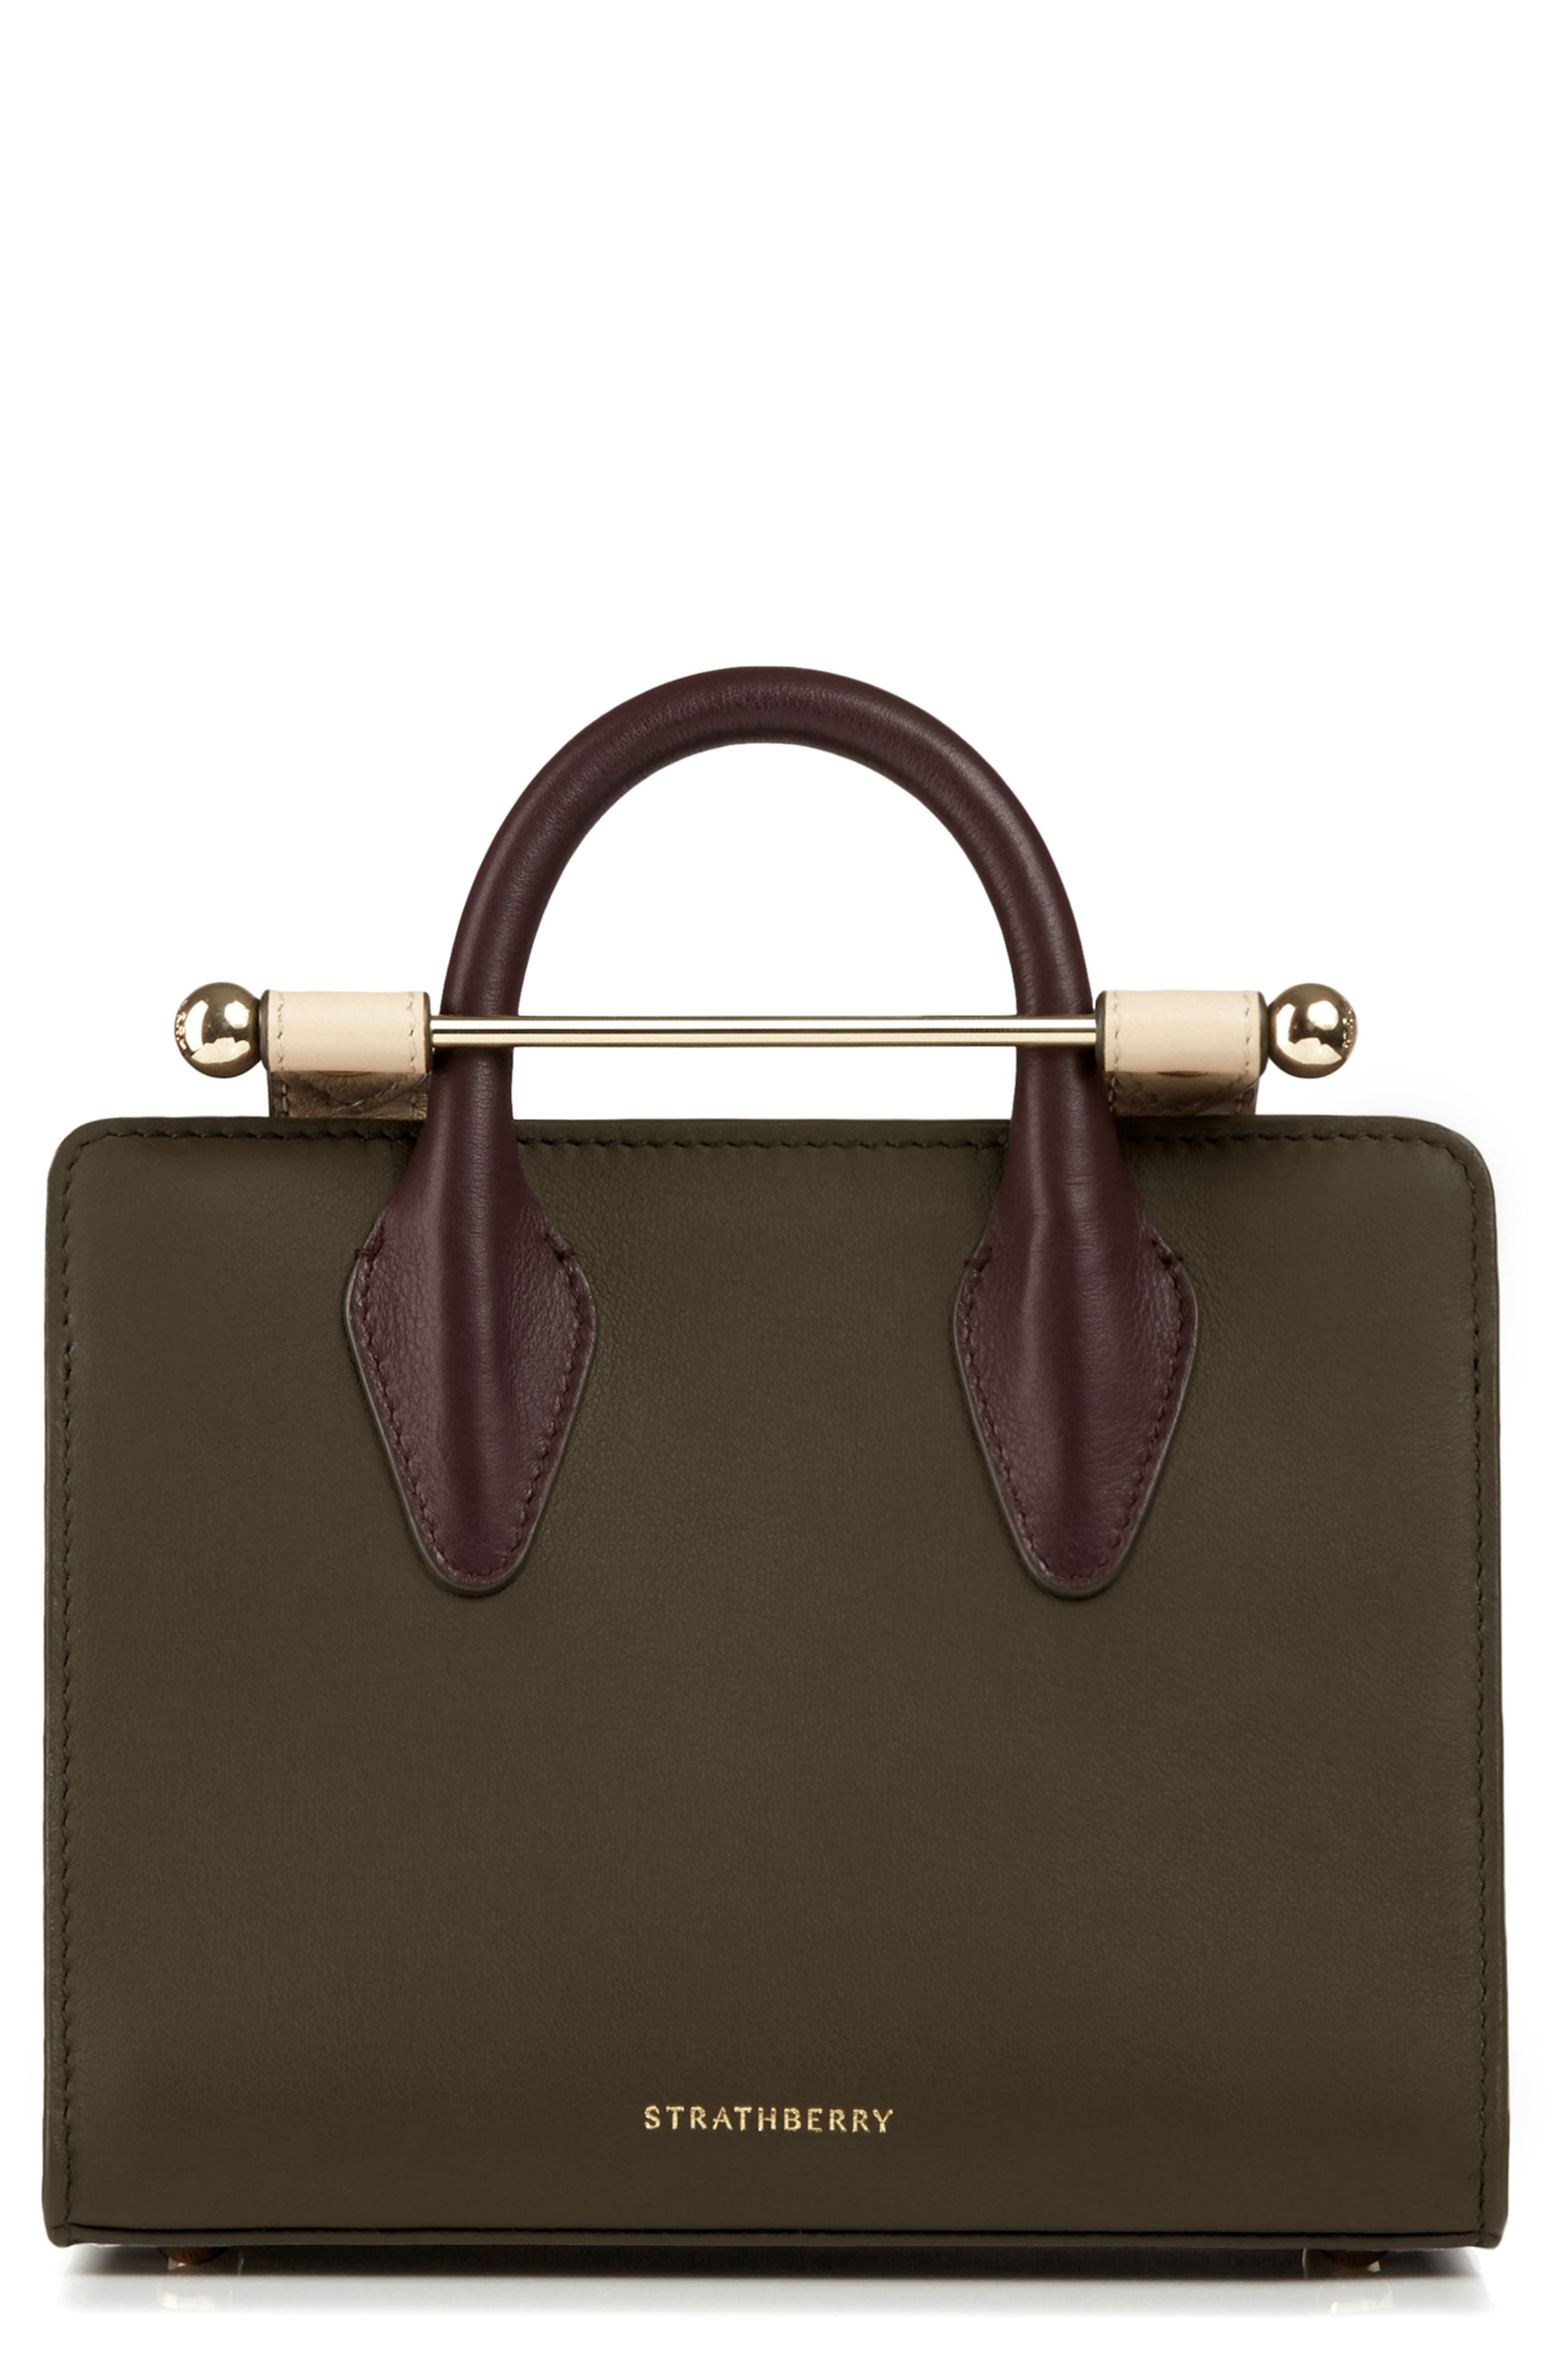 STRATHBERRY Nano Tricolor Leather Satchel, Main, color, FOREST/ SAND/ BURGUNDY